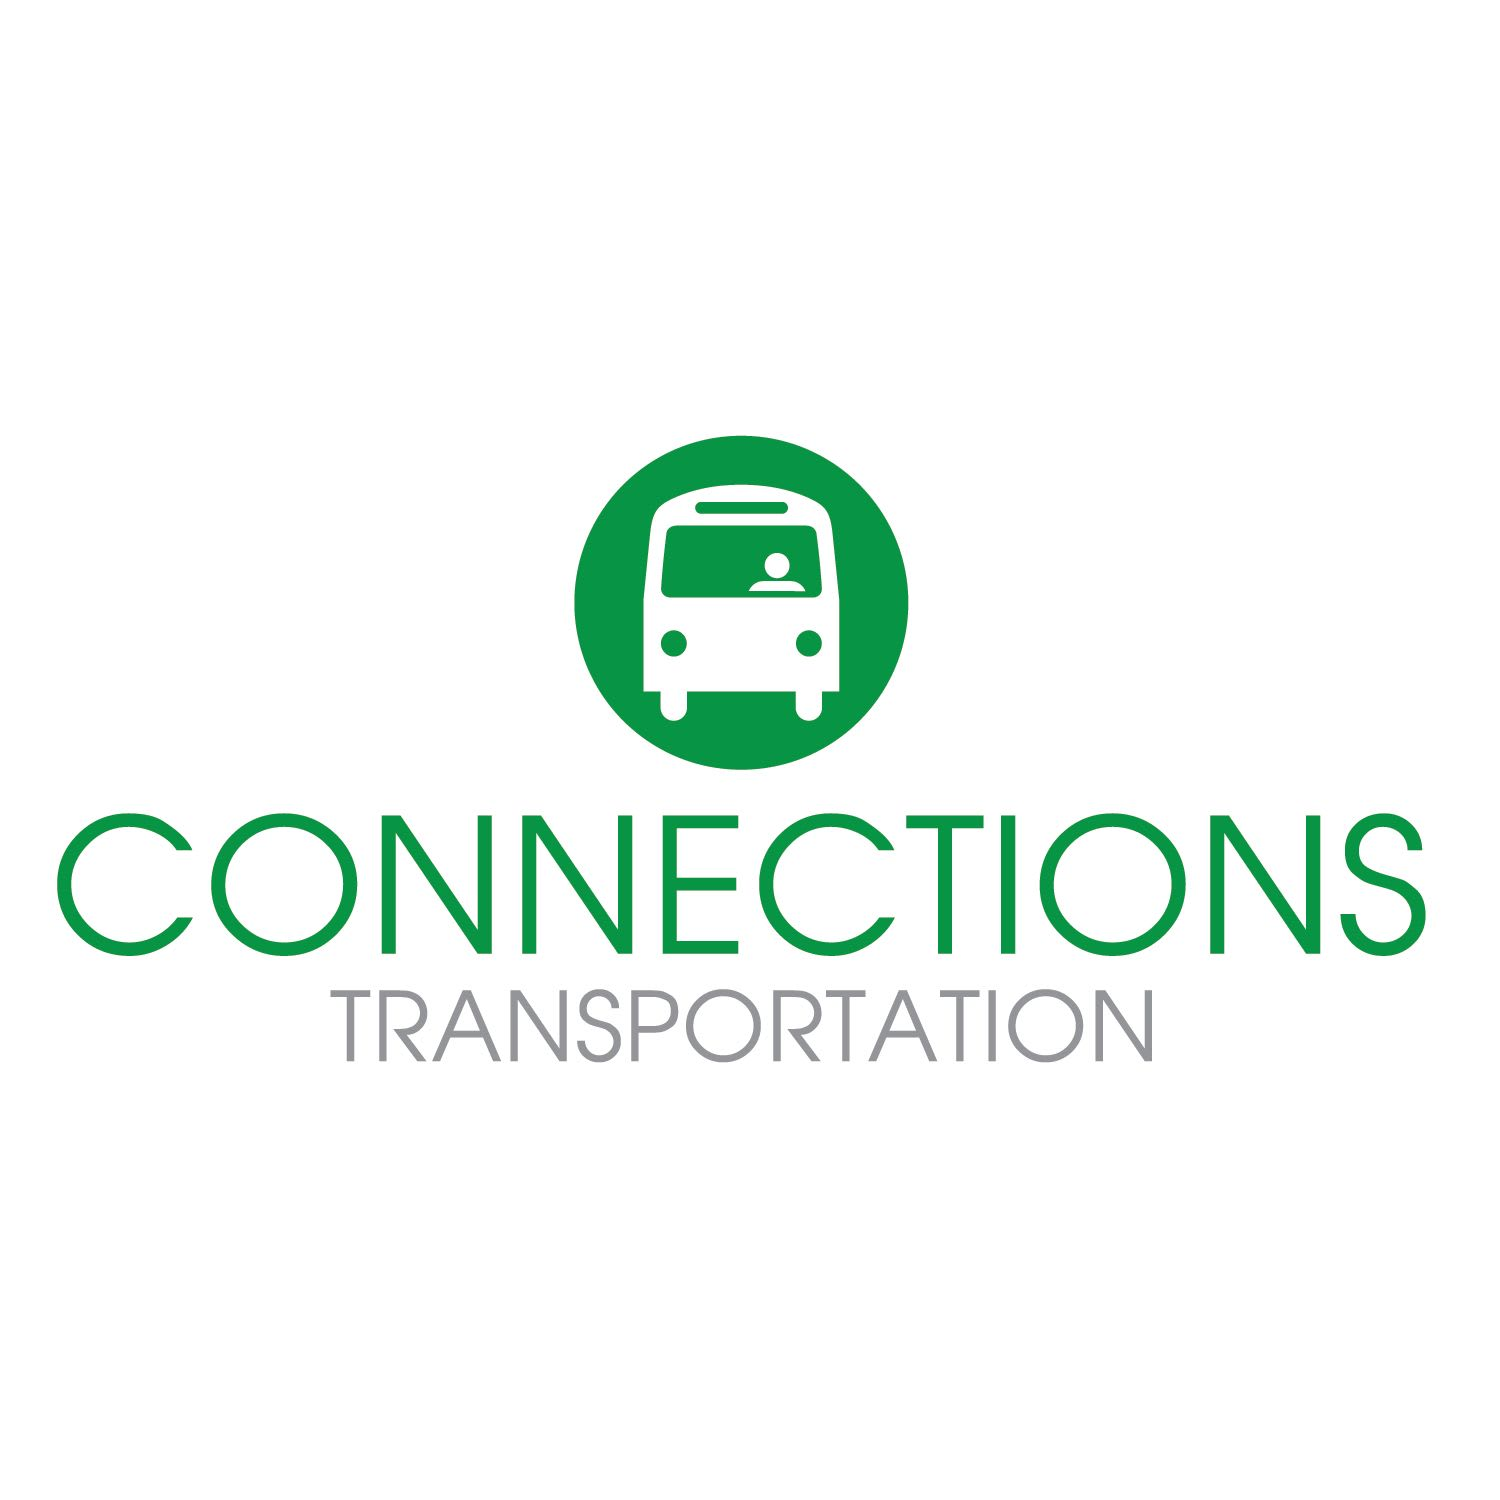 Transportation connections for The Terrace At Mountain Creek senior living residents.